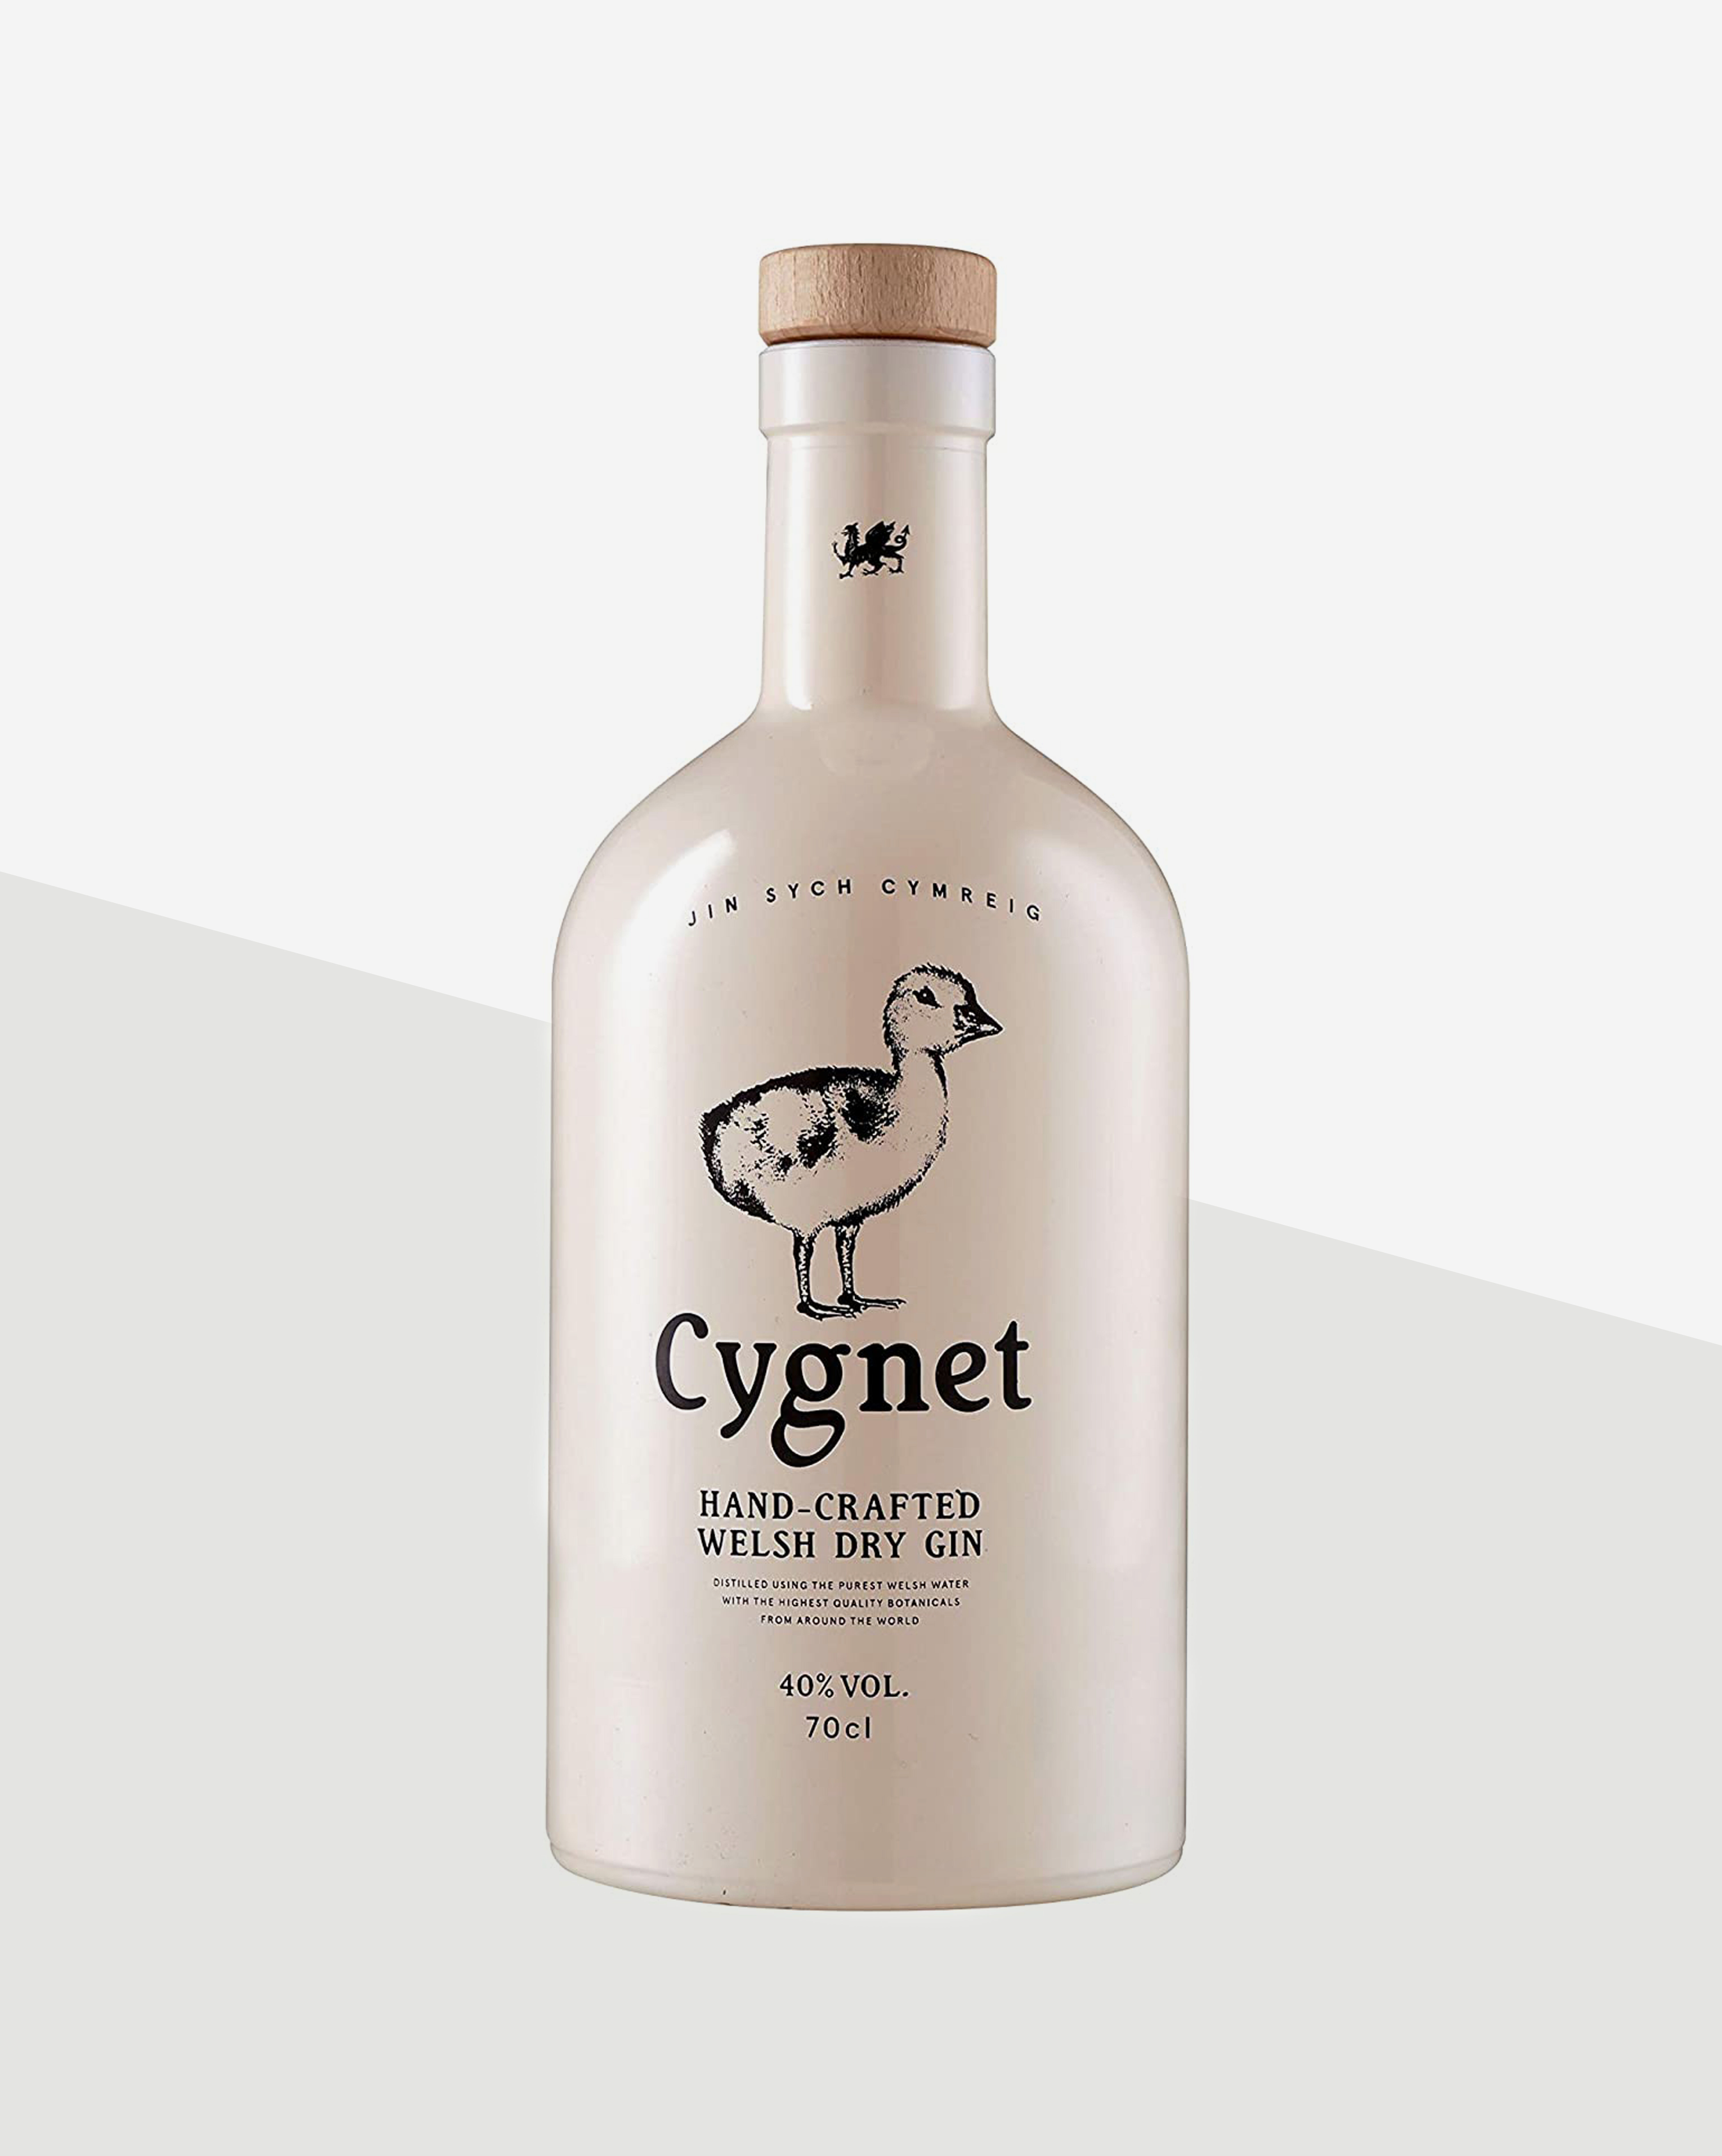 The best Welsh spirits to celebrate St. David's Day